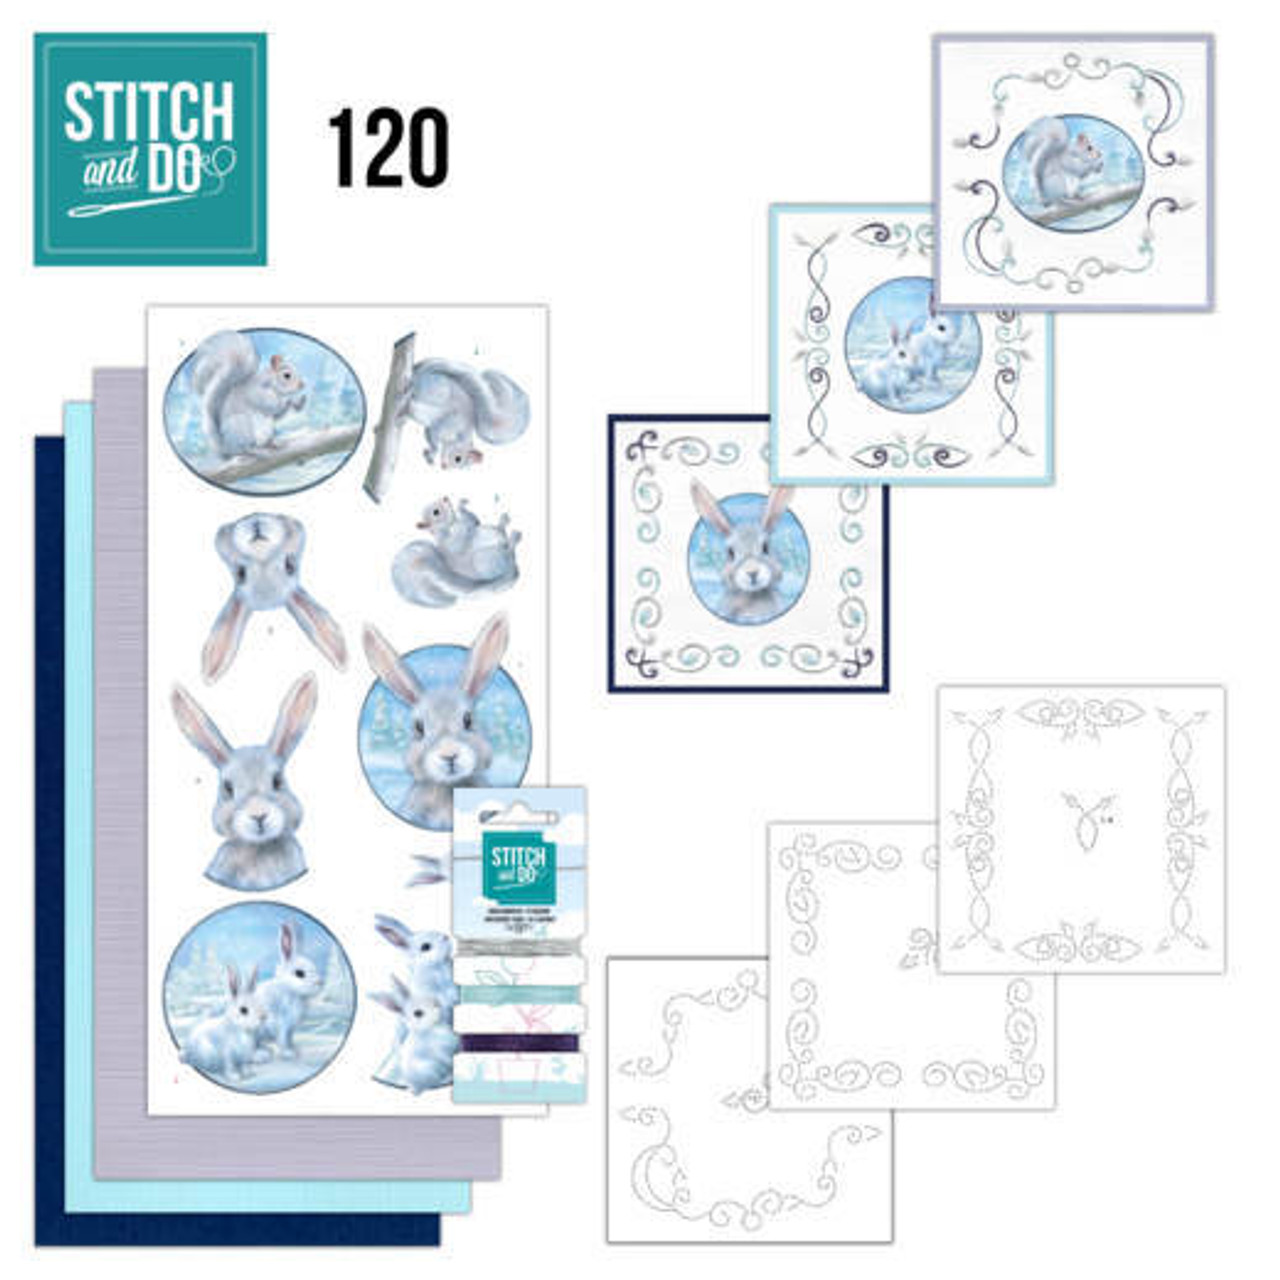 Stitch and Do 120 - Card Embroidery Kit - Arctic Friends